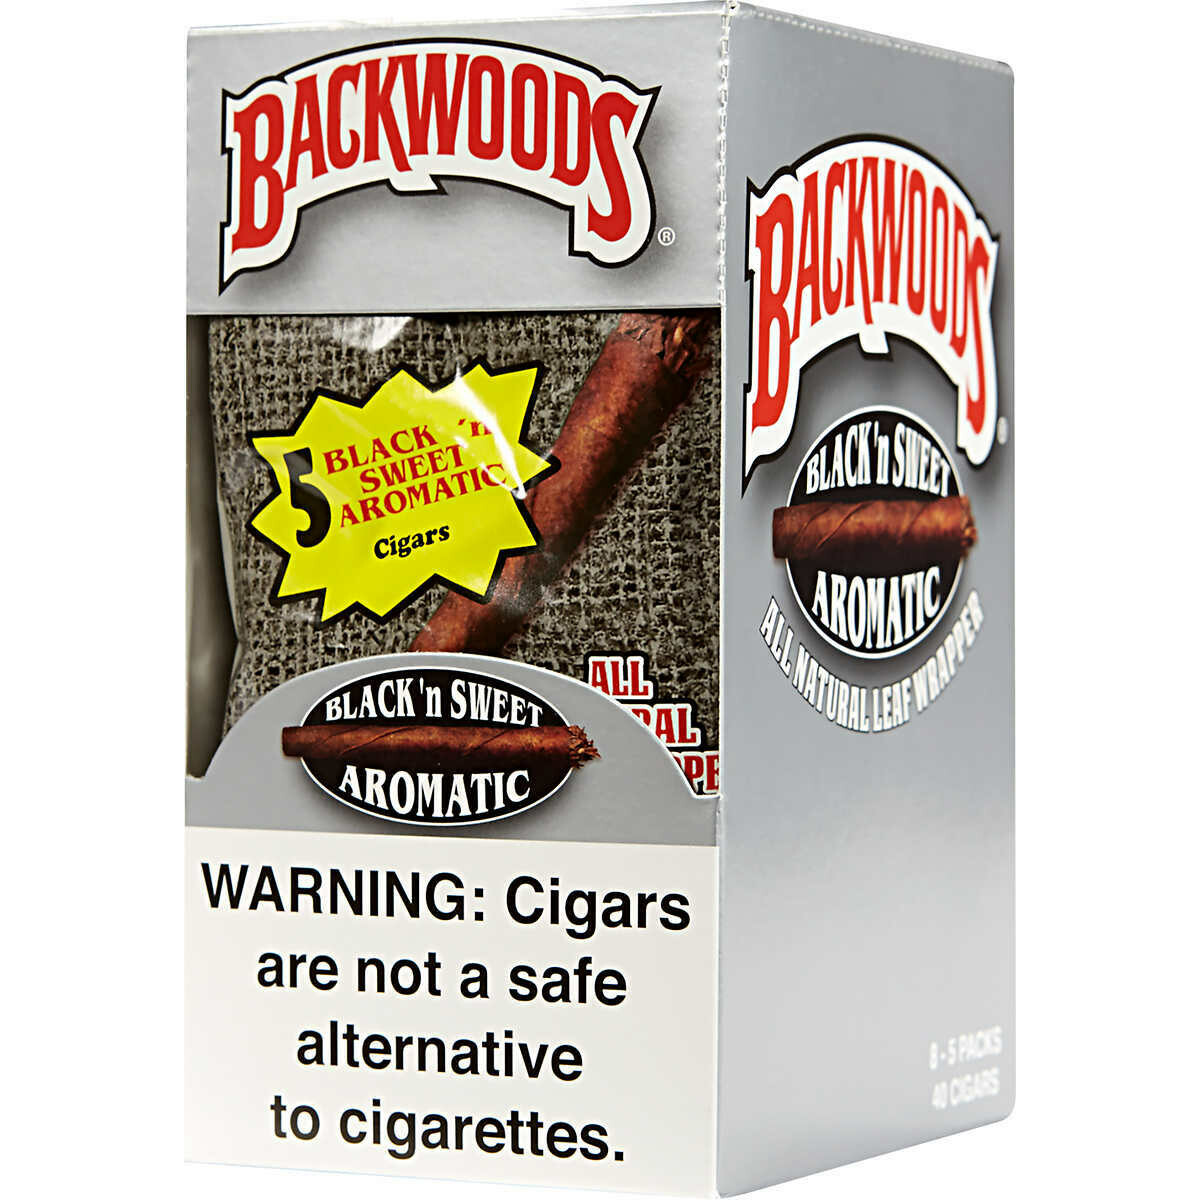 Backwoods - Black and Sweet aromatic